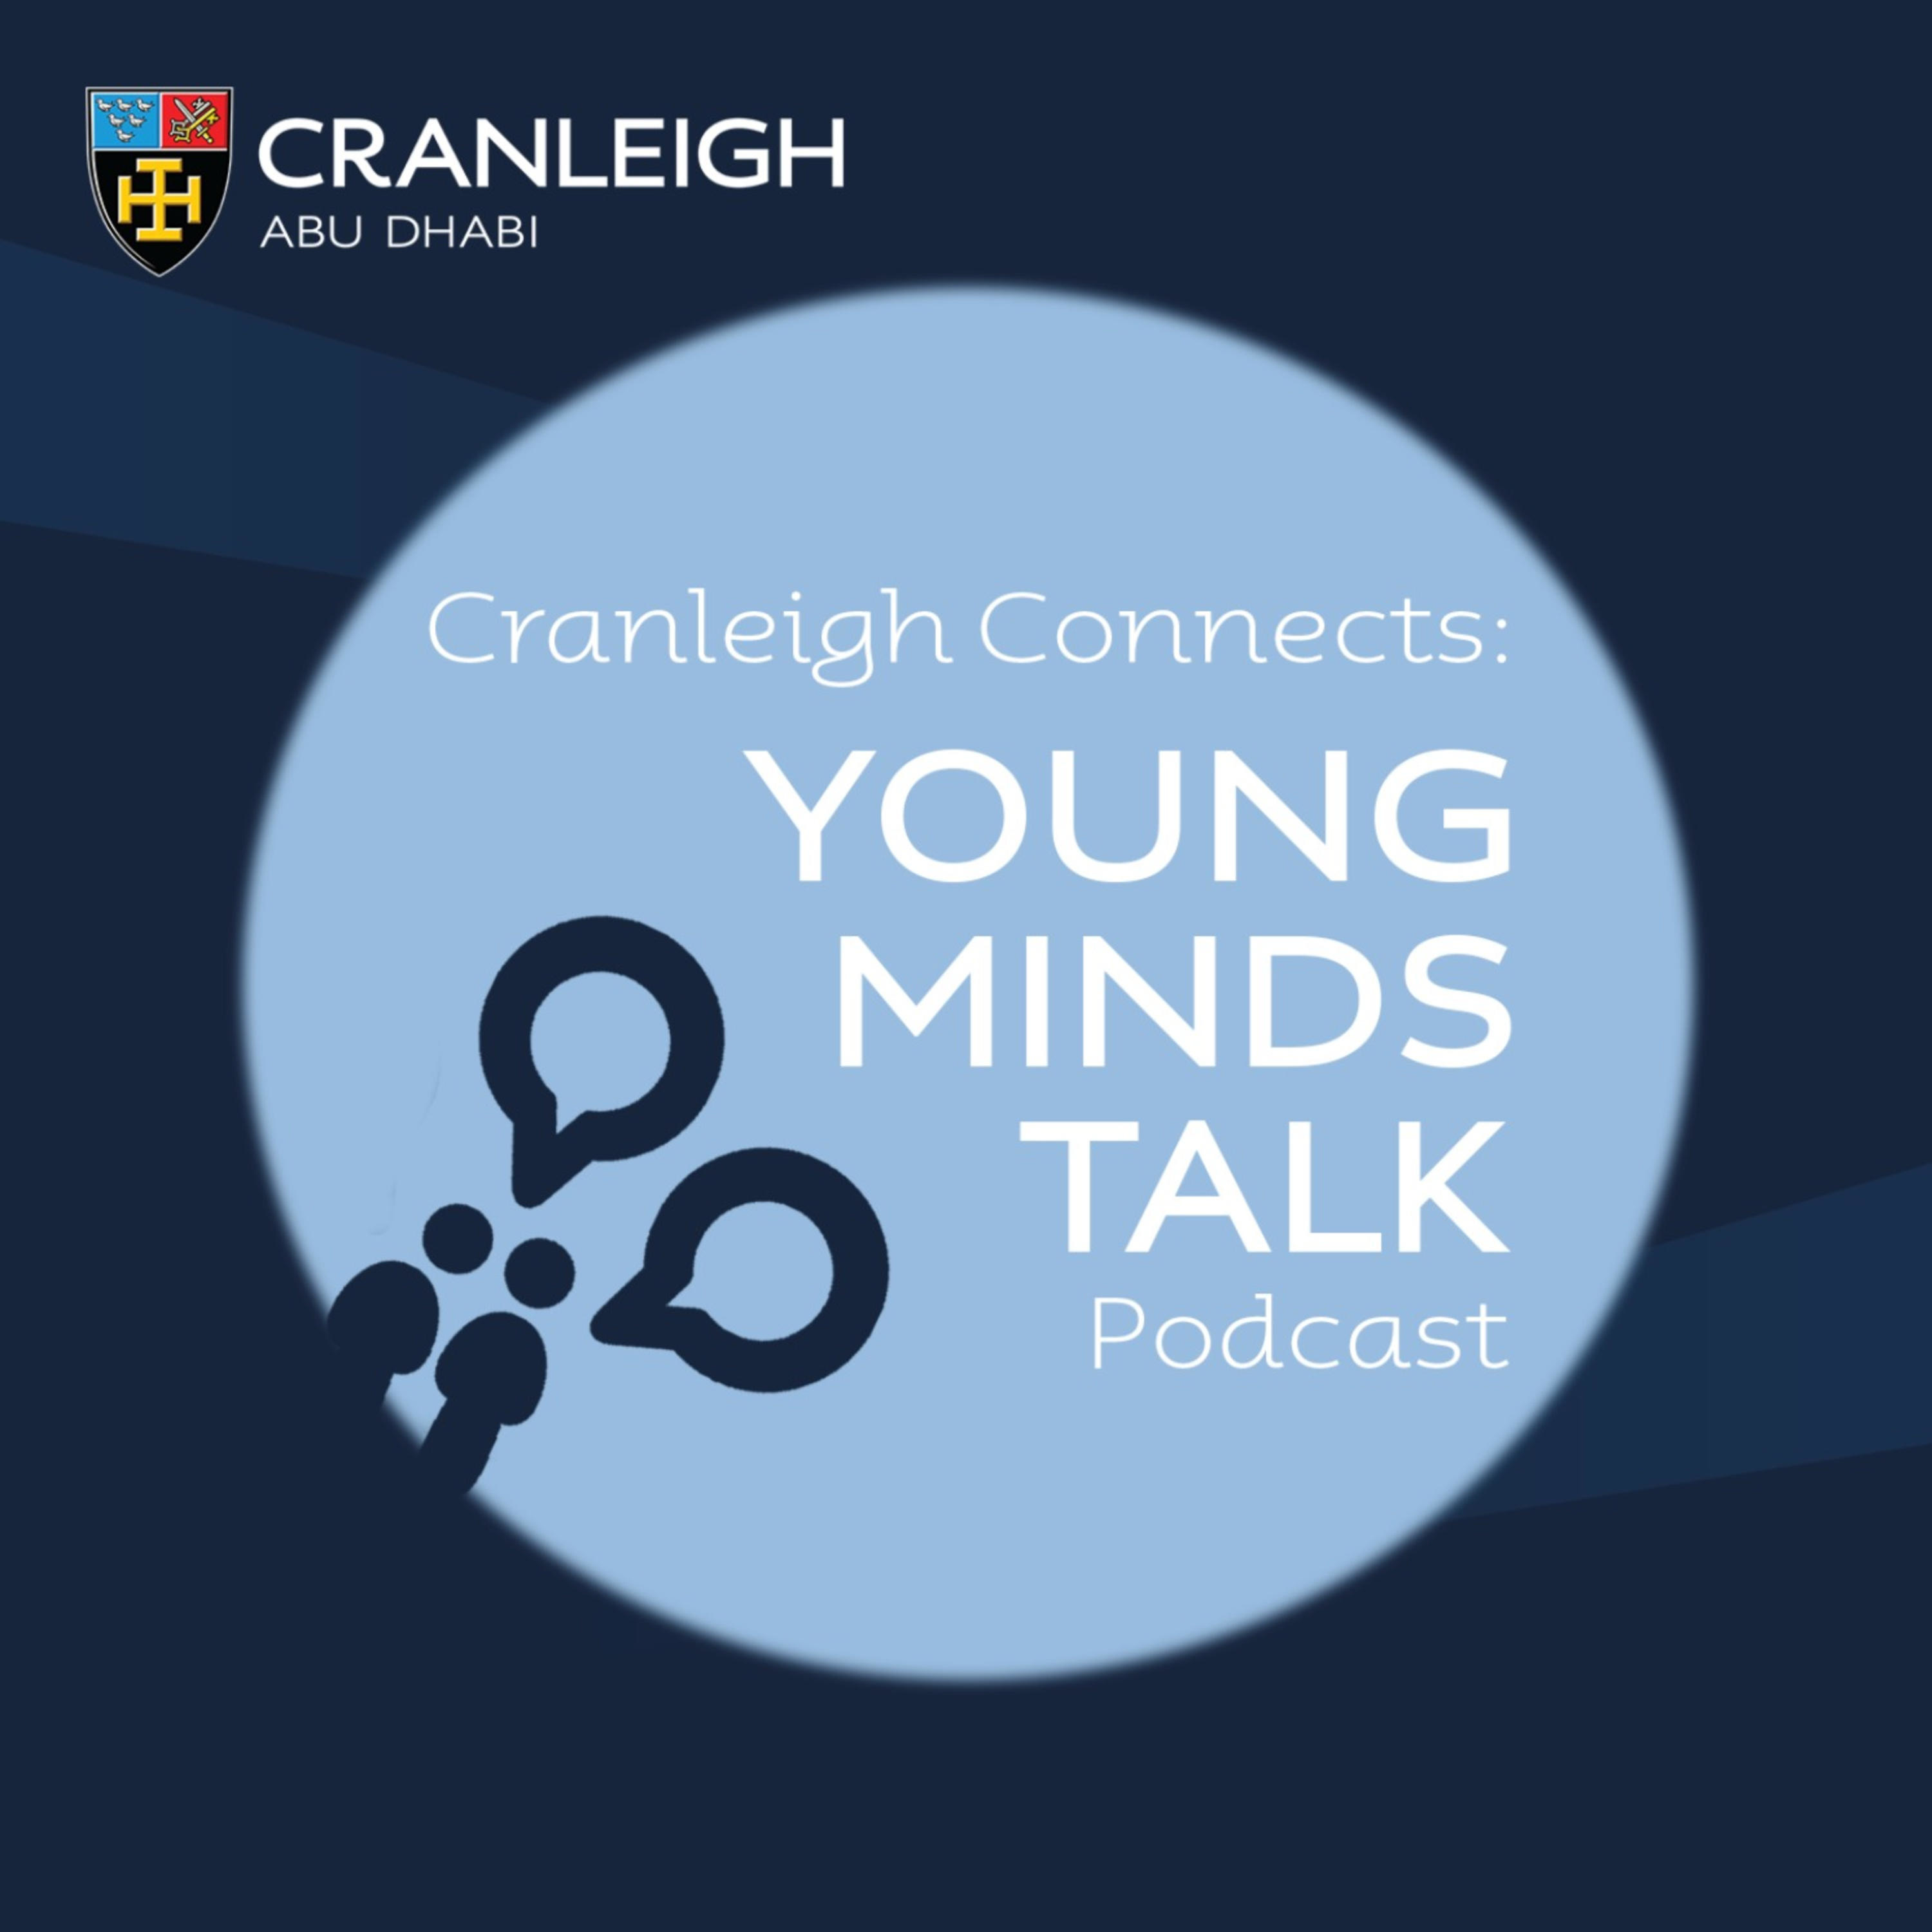 Cranleigh Connects: Young Minds Talk